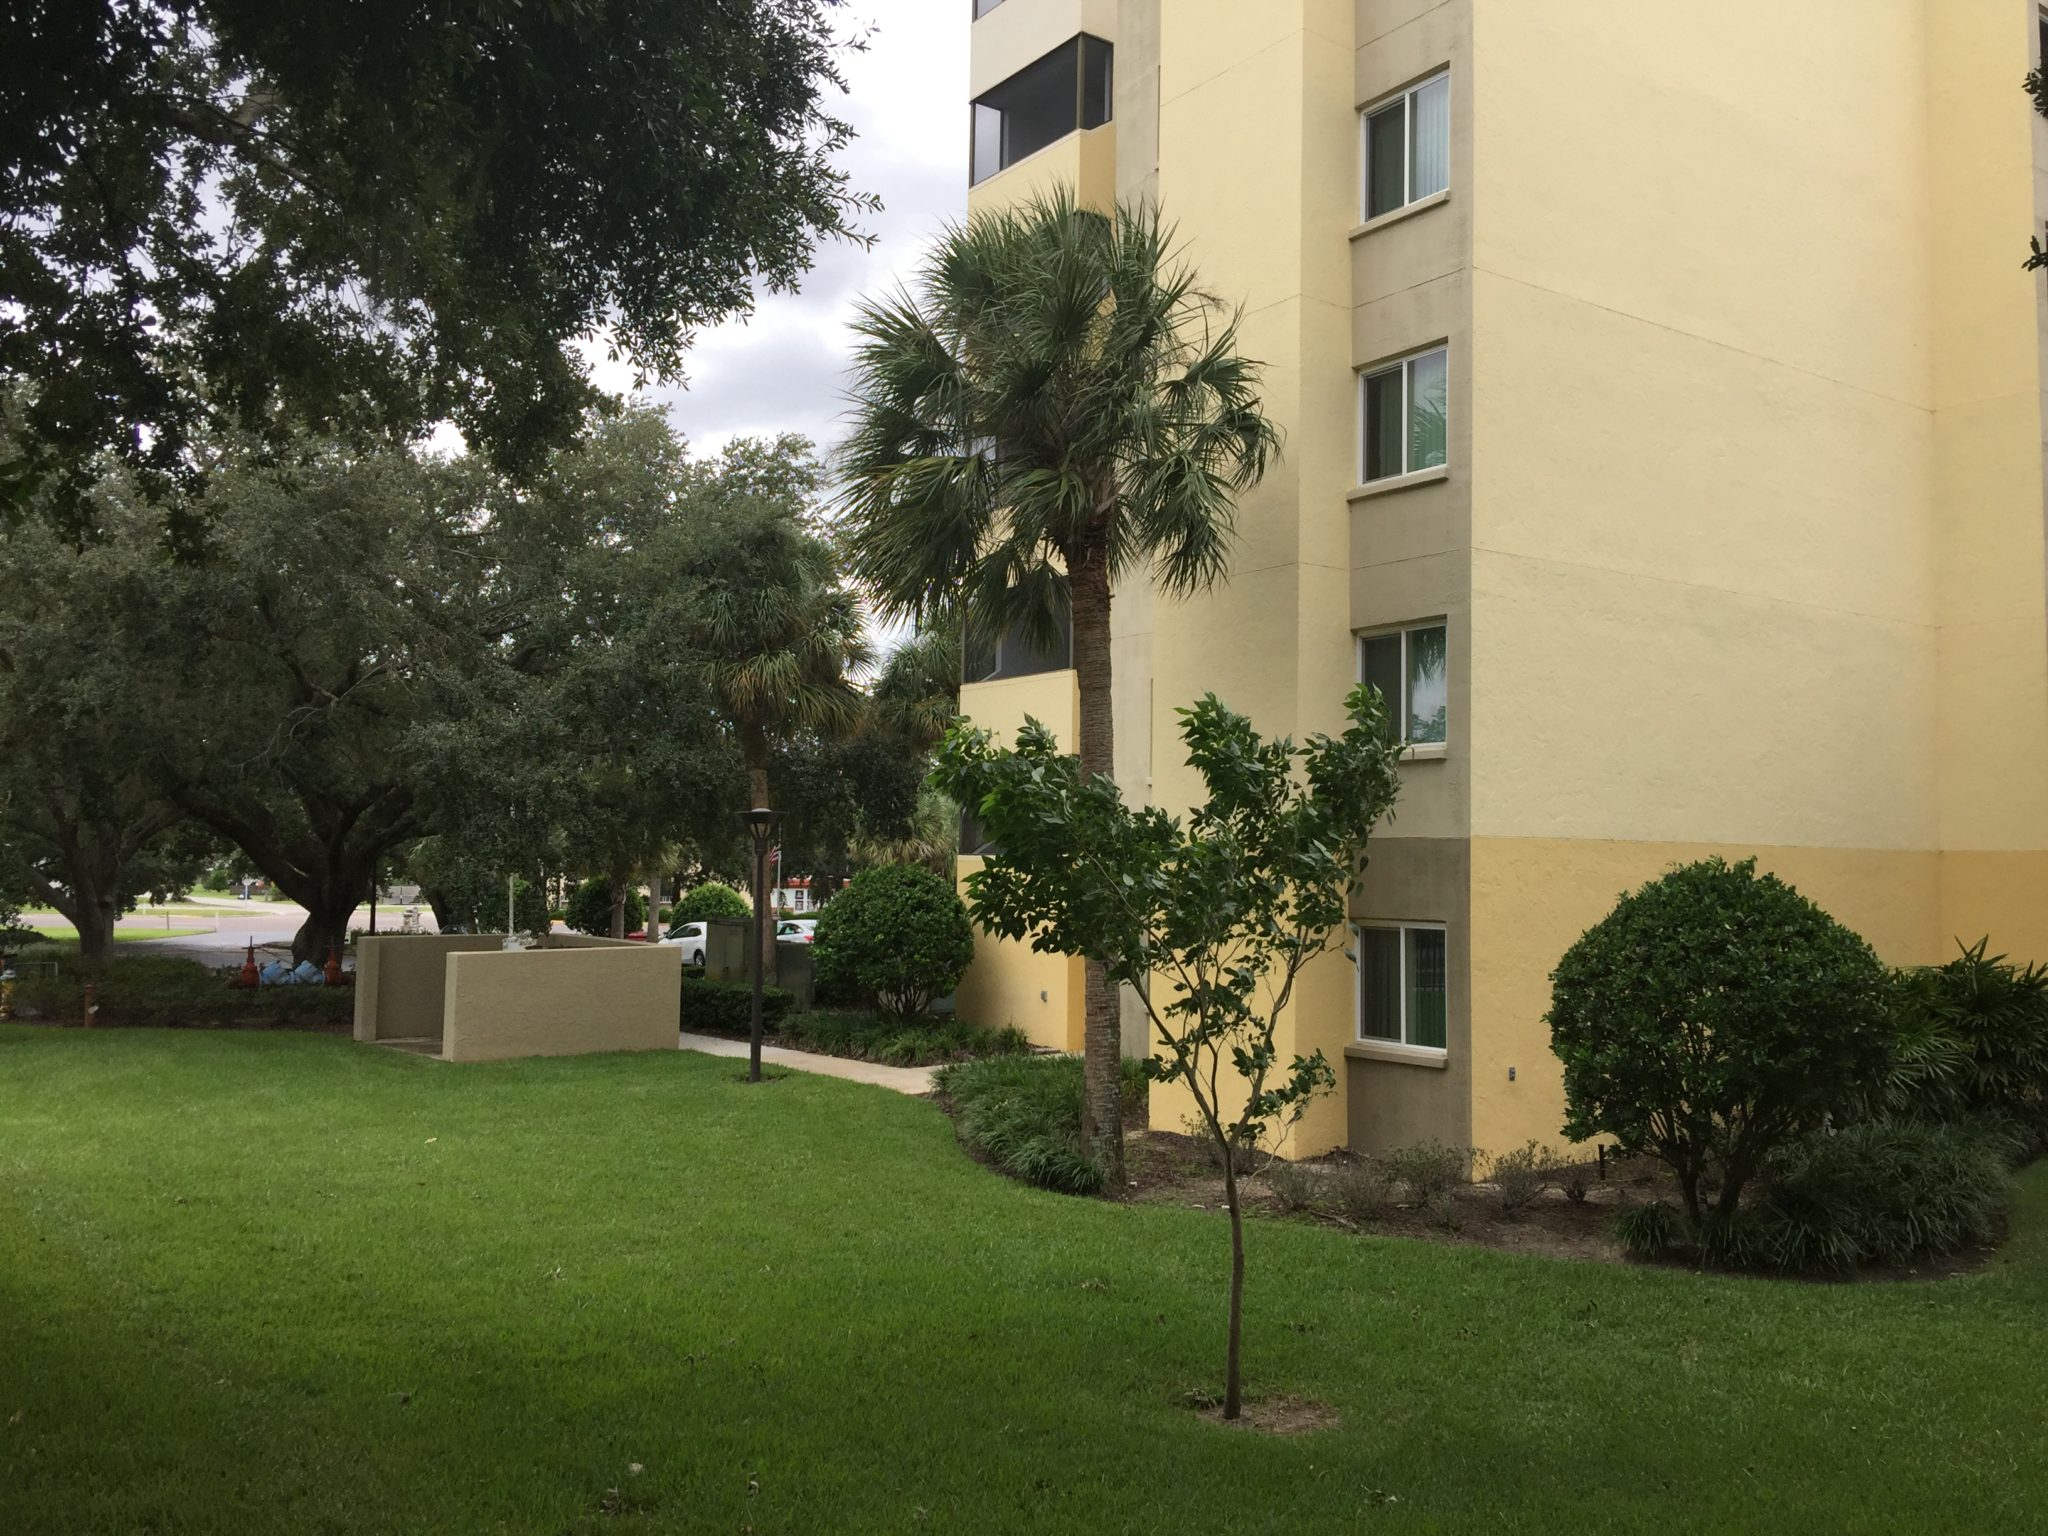 CYPRESS CATHEDRAL APARTMENTS